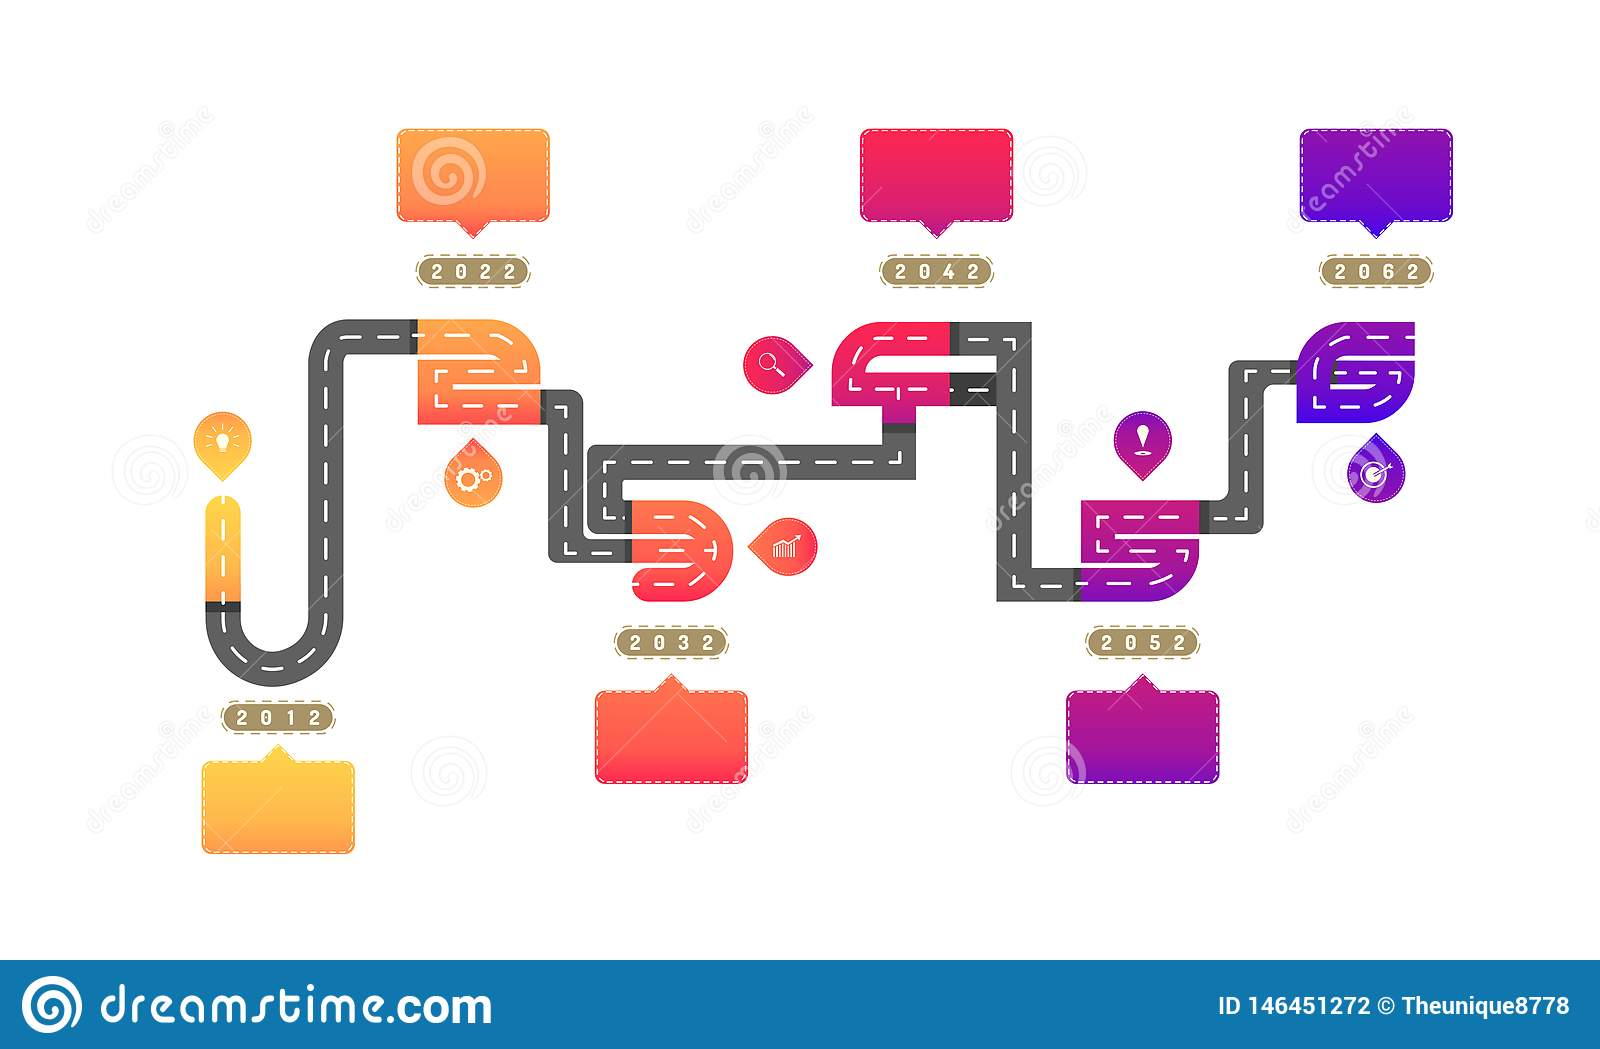 One to six way roadmap timeline elements with markpoint graph think search gear target icons. vector illustration eps10